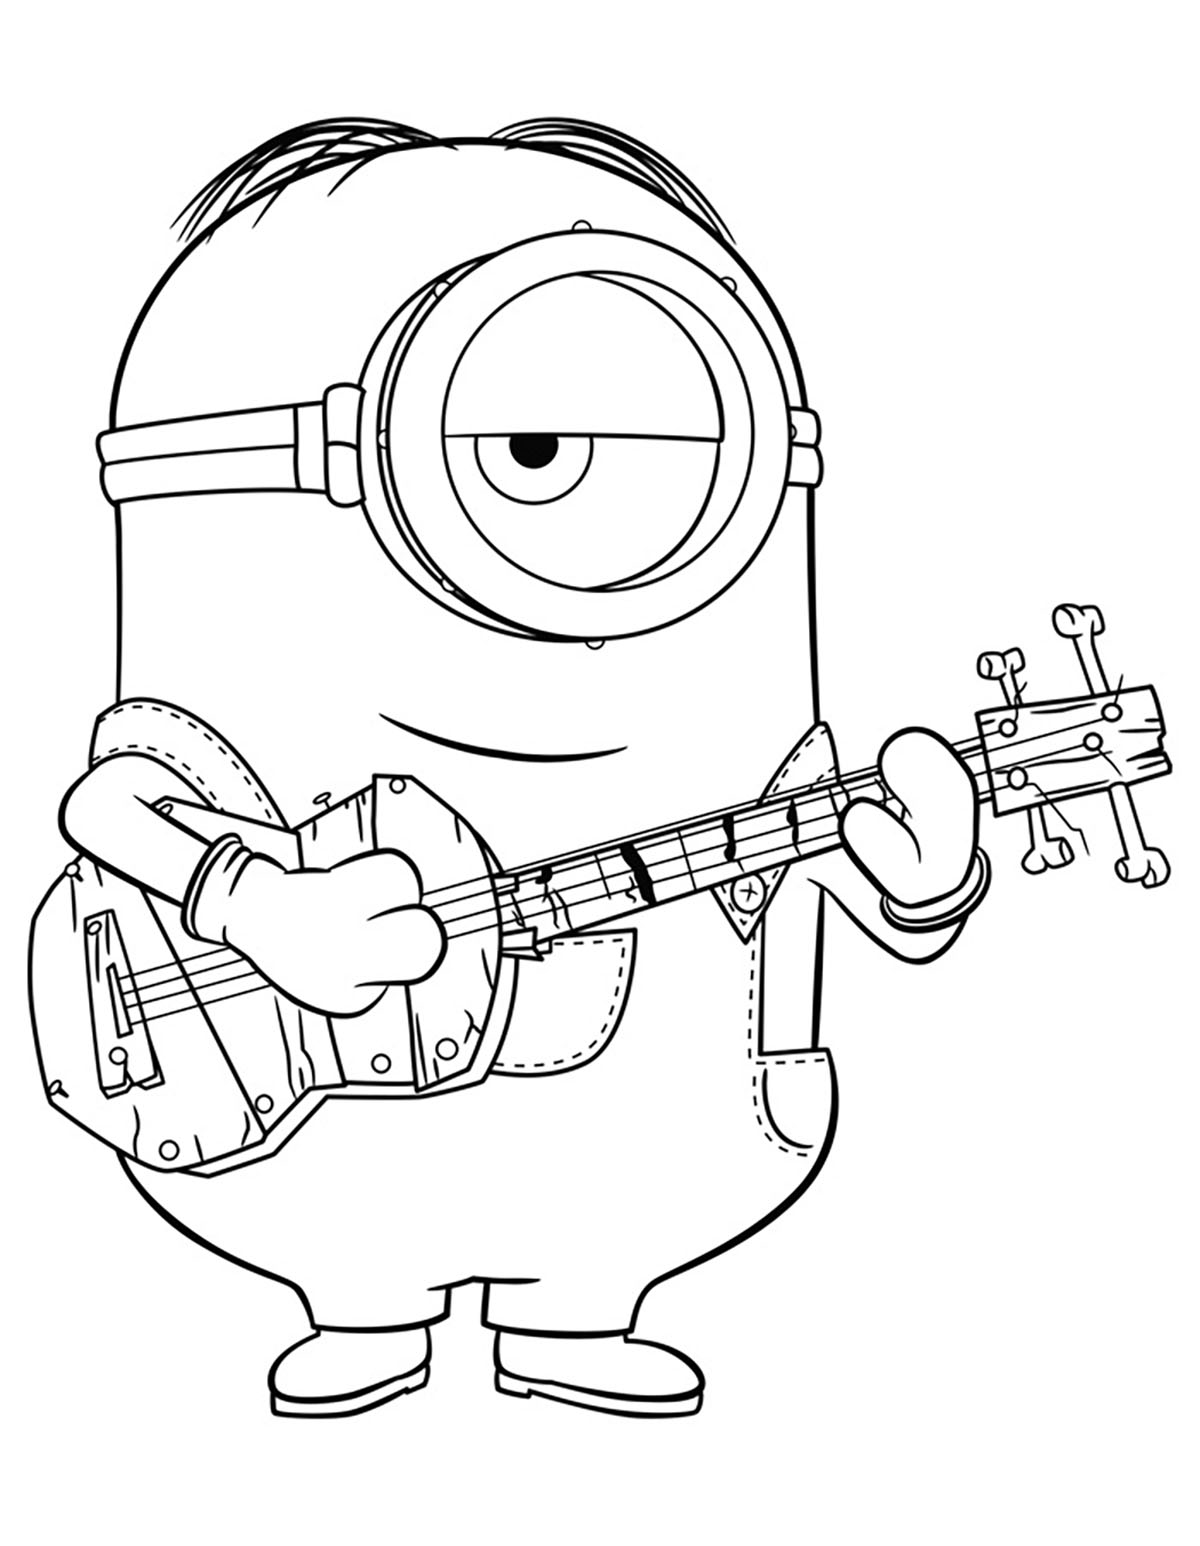 coloring printable minions minions for kids minions kids coloring pages minions printable coloring